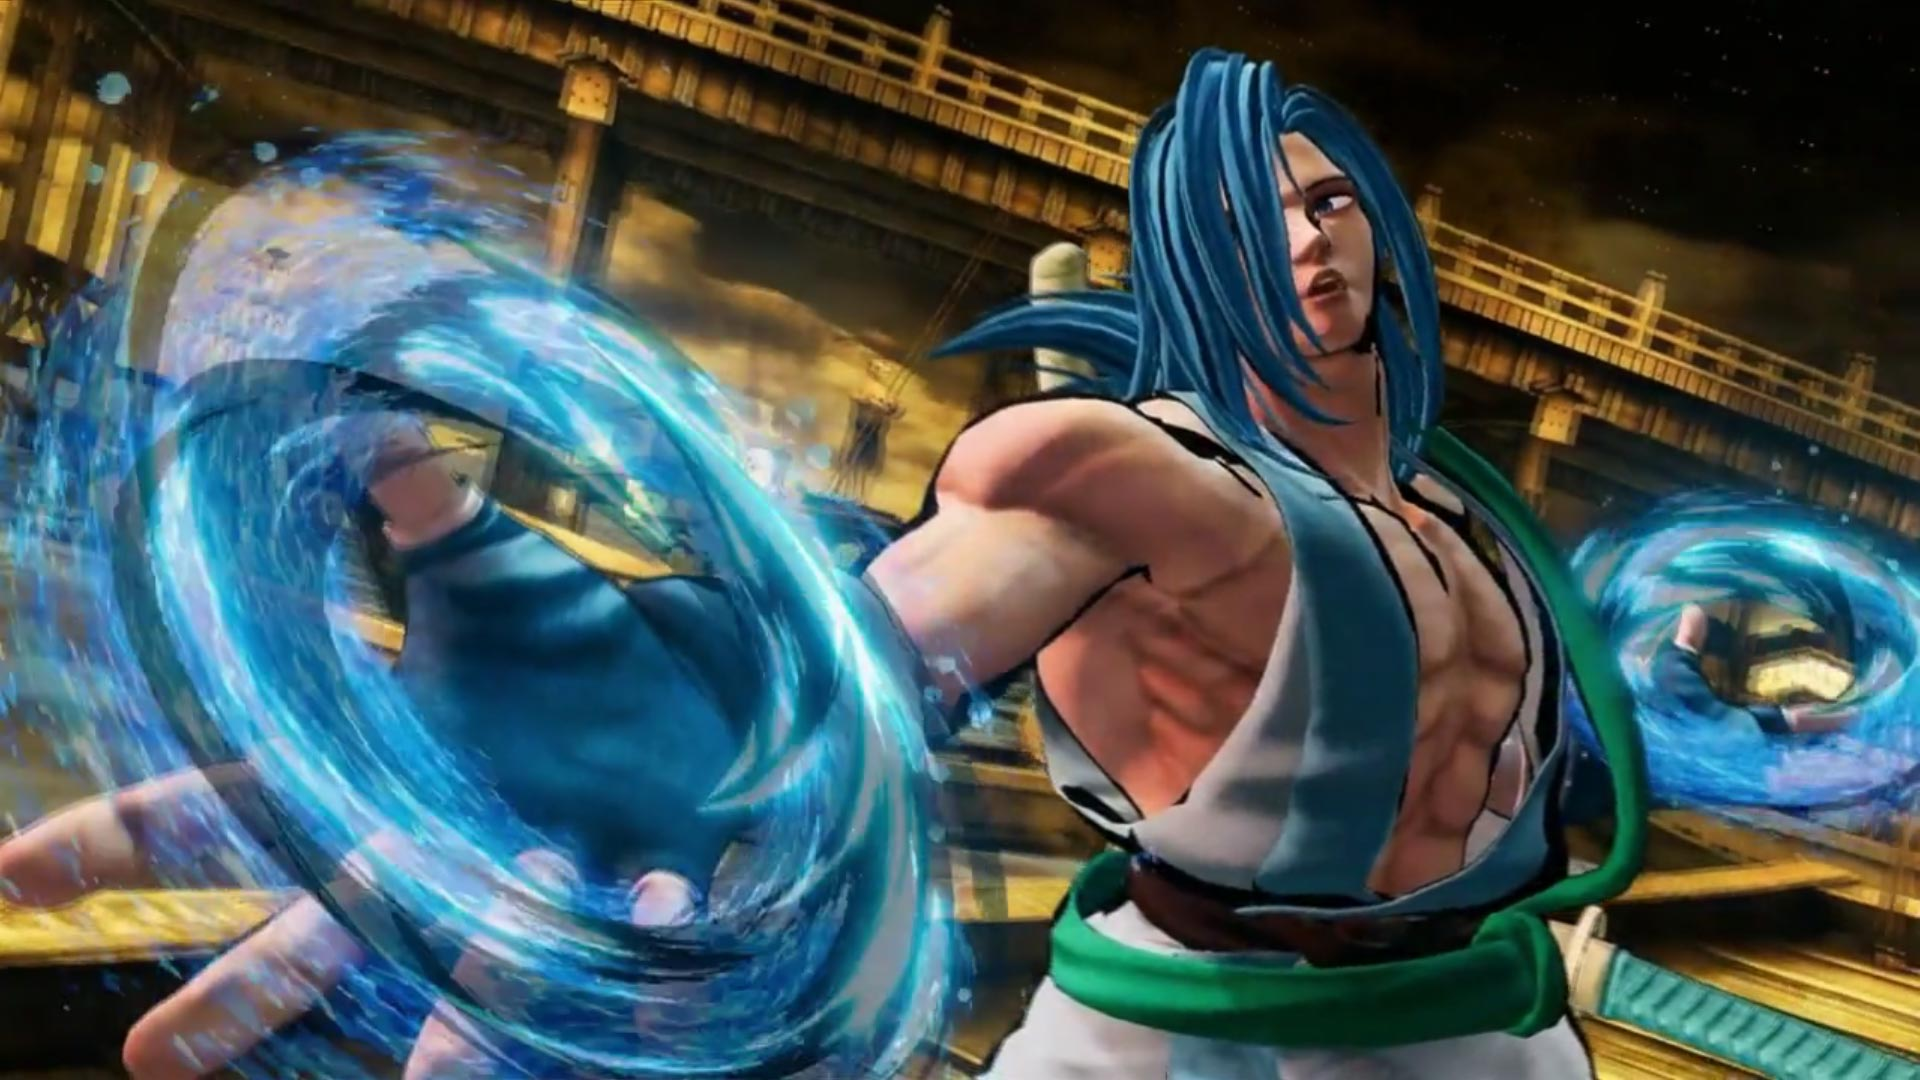 Samurai Shodown Season 2 Trailer Image Gallery 5 out of 9 image gallery